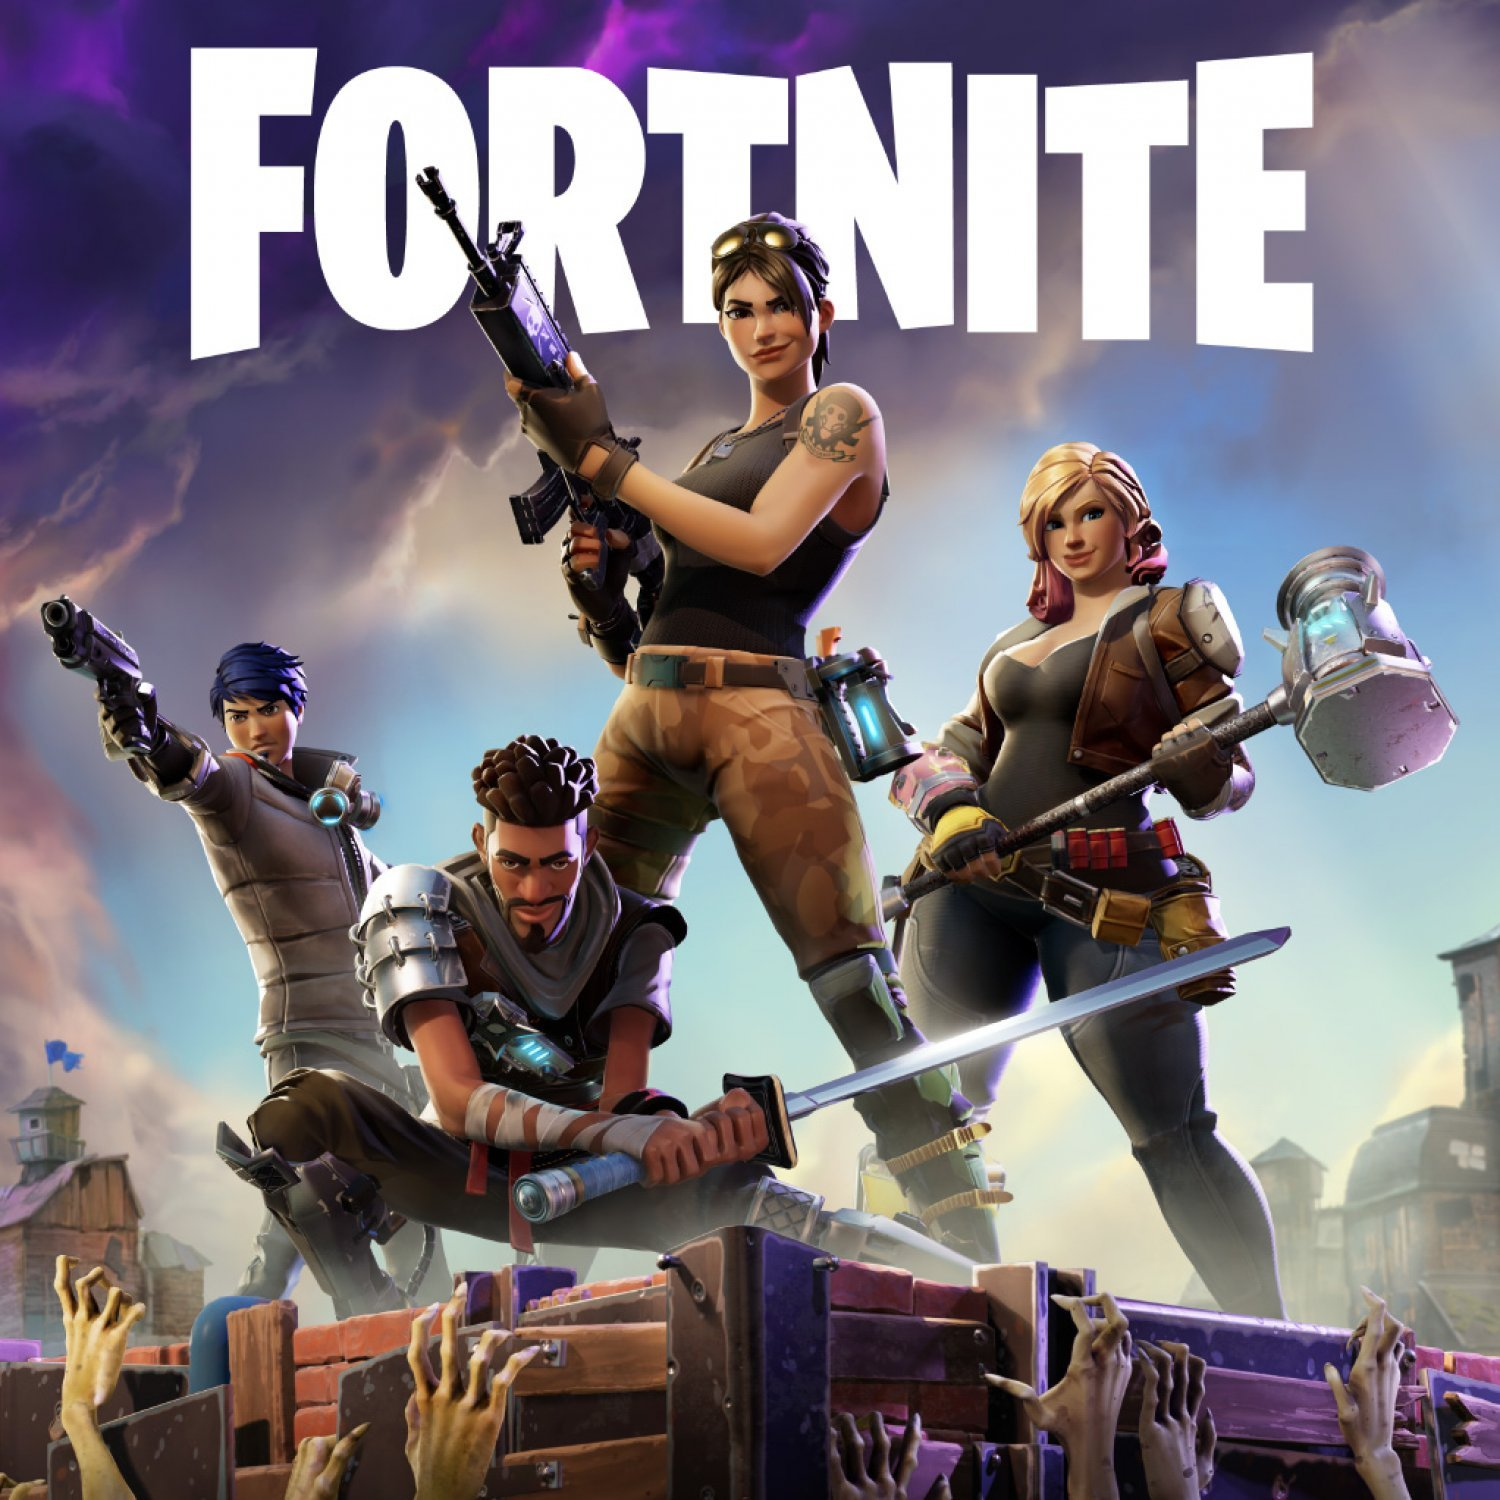 Fortnite [Deluxe Edition] Official Website digital